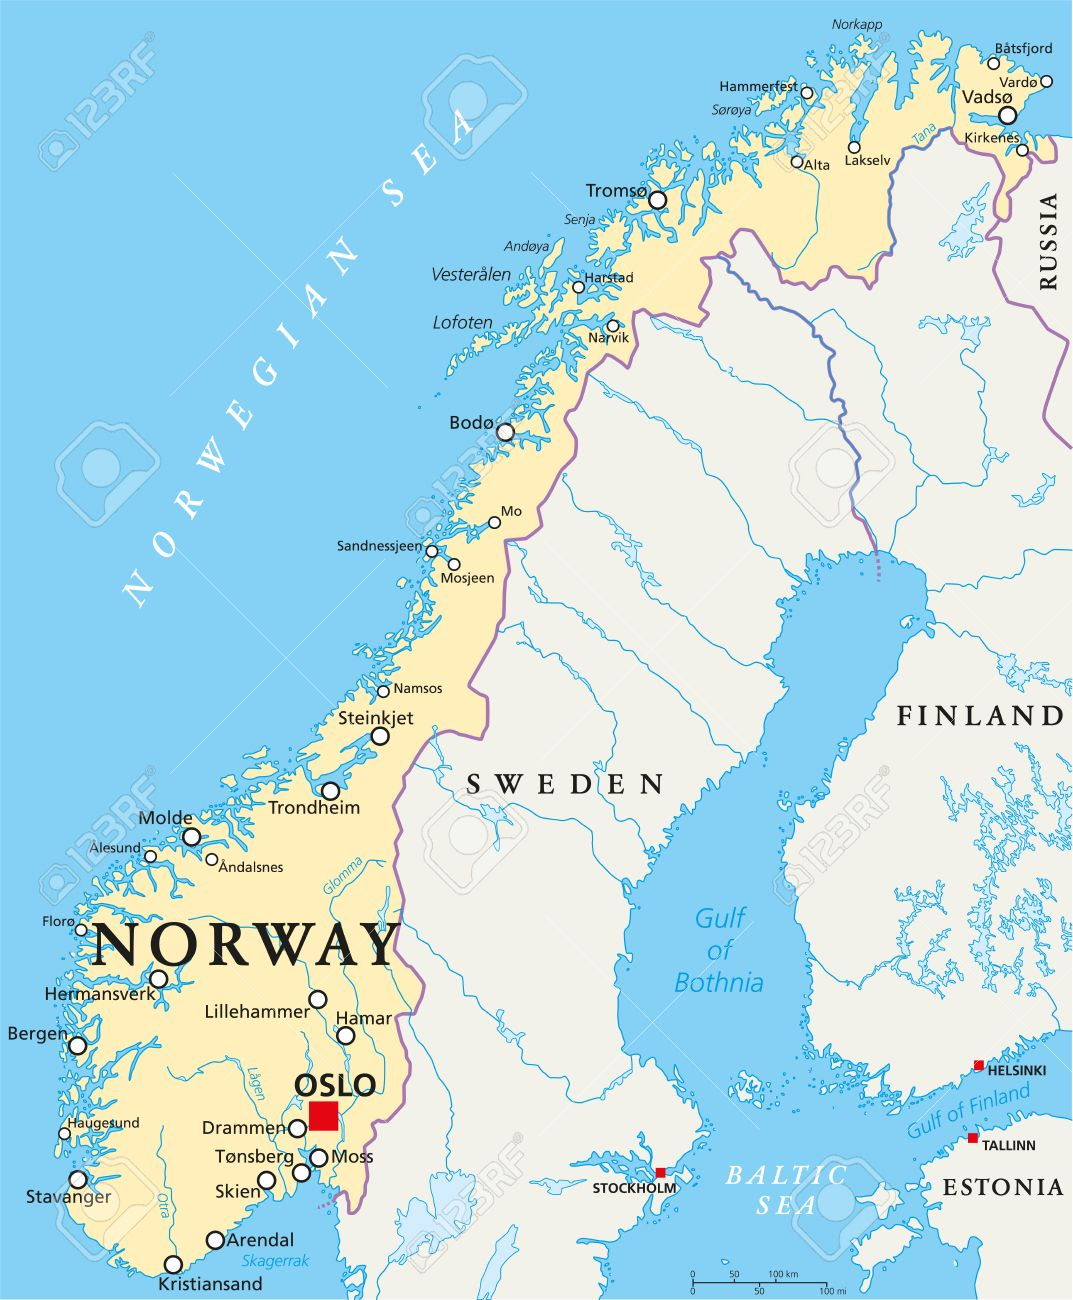 Norway Political Map With Capital Oslo National Borders Important